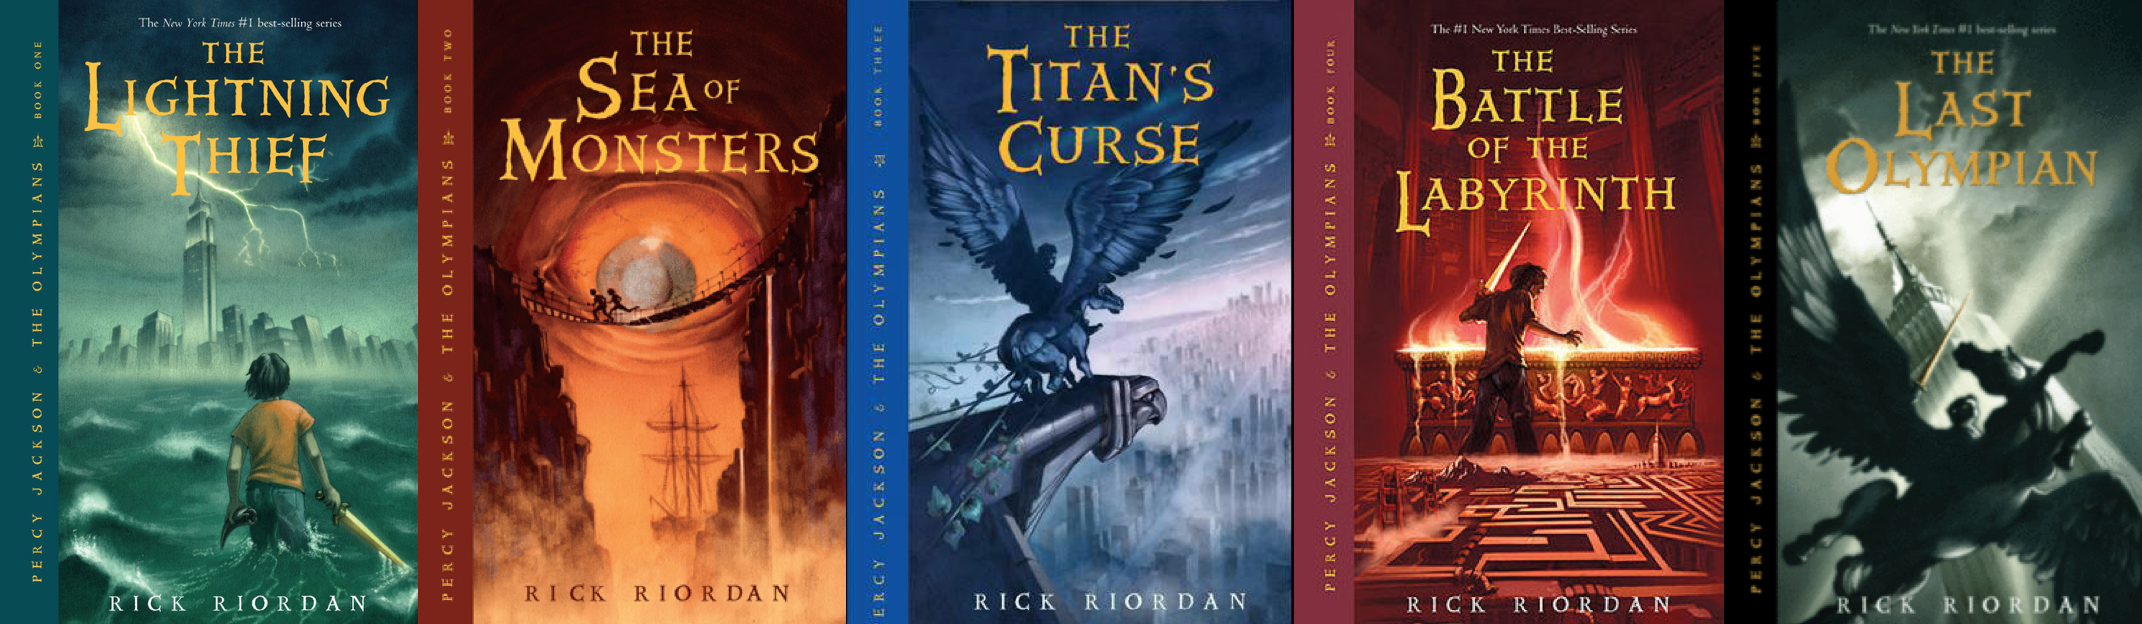 Let's Talk About The Percy Jackson Series – The Little ...